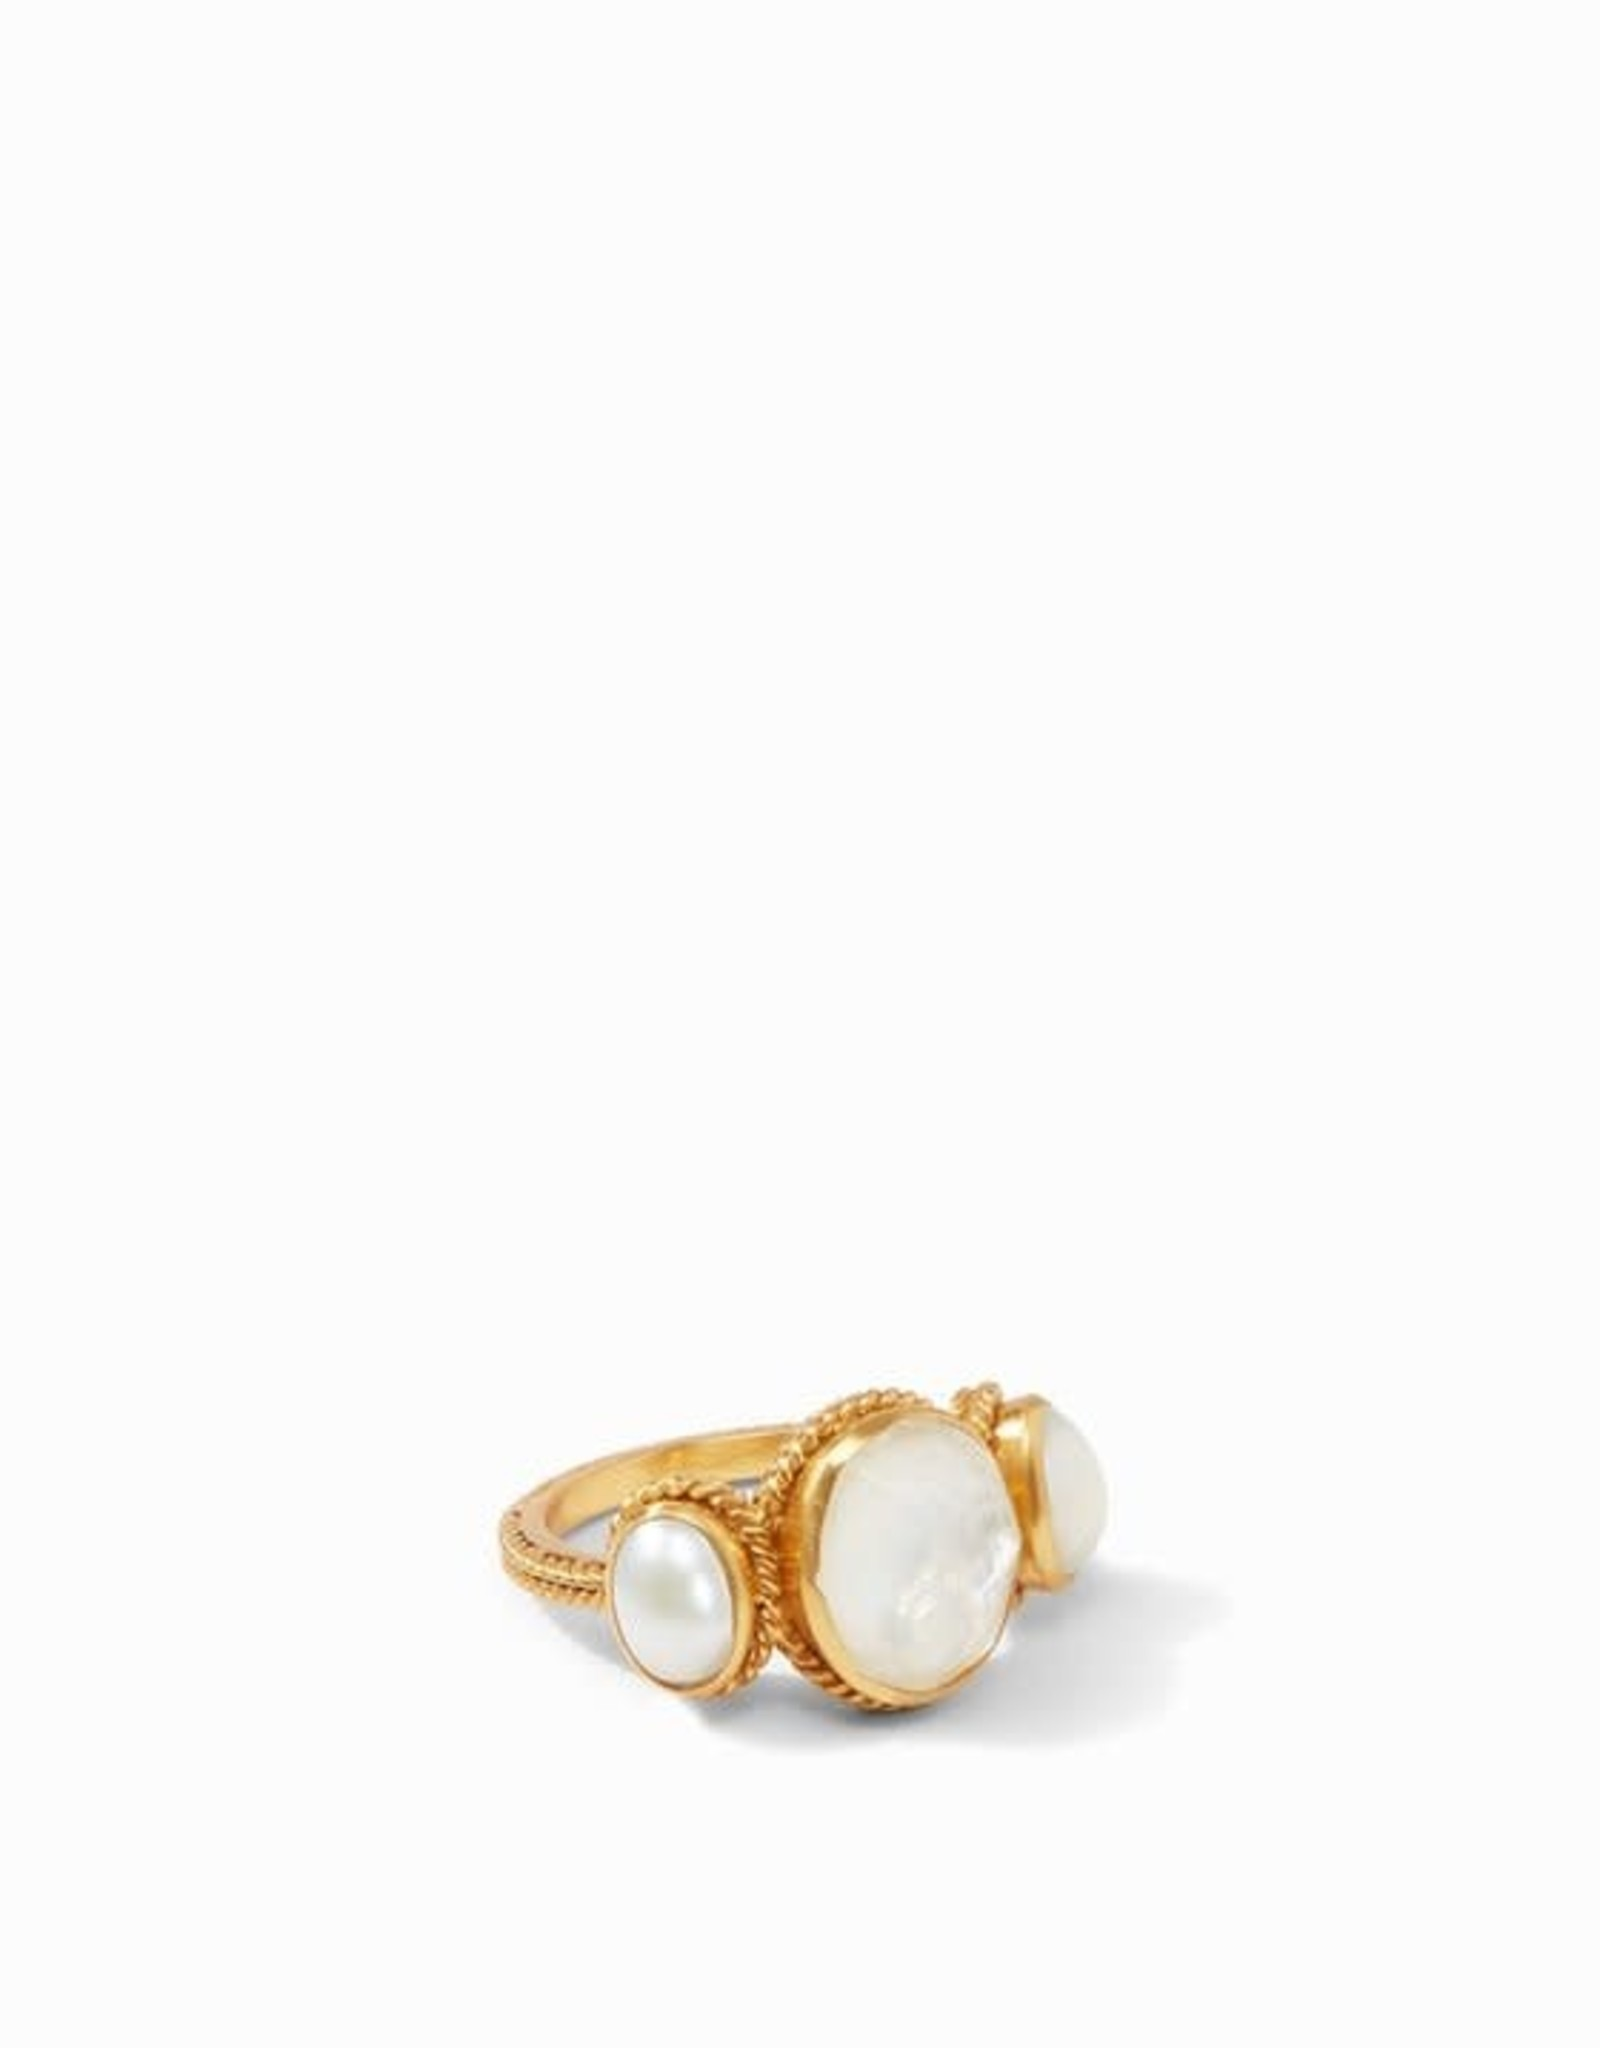 Julie Vos Calypso Ring Gold Iridescent Clear Crystal Middle Stone with Pearl Side Stones - Size 6